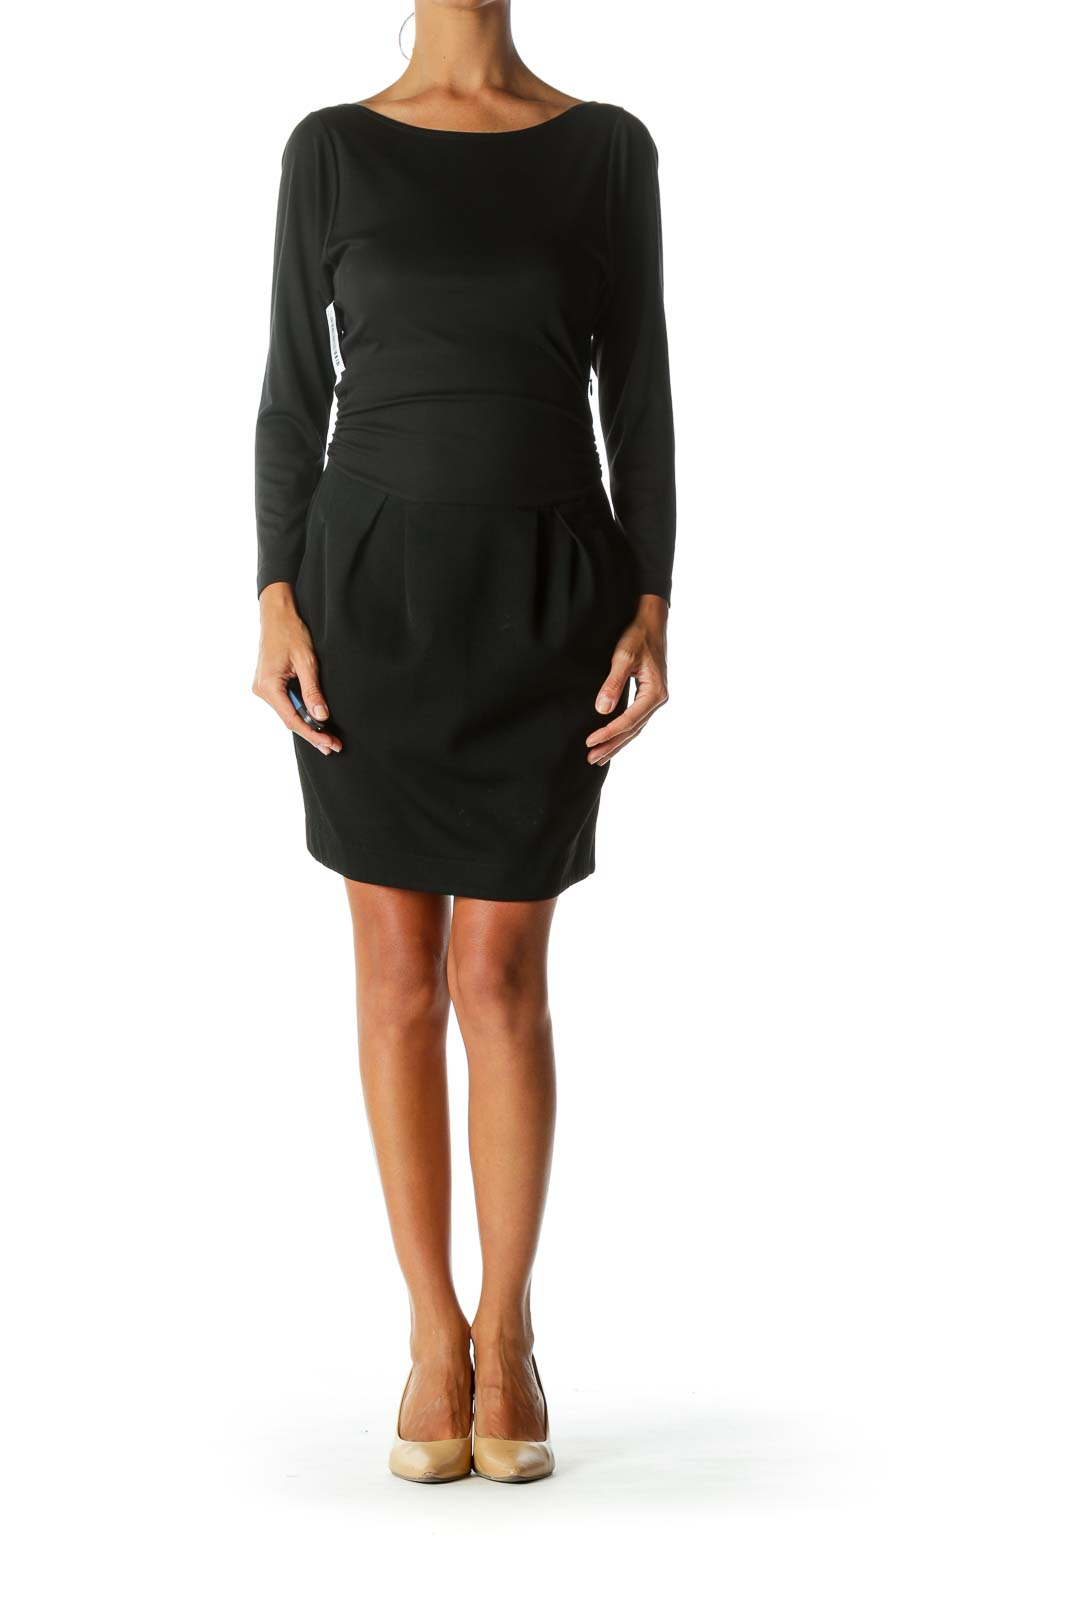 Black Long-Sleeve Mixed-Media Pleated-Skirt Pocketed Work Dress